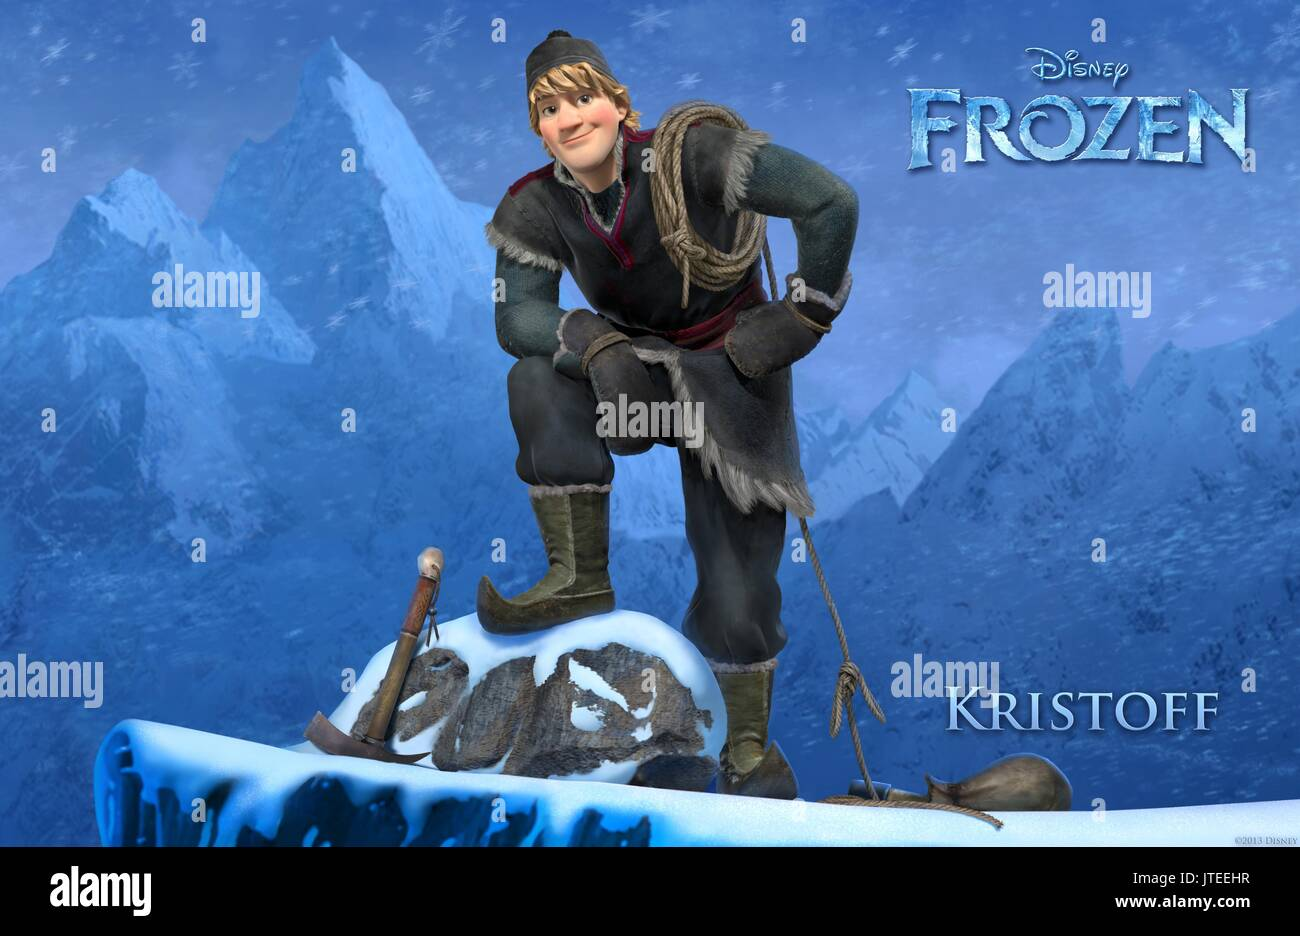 kristoff frozen stock photos kristoff frozen stock images alamy